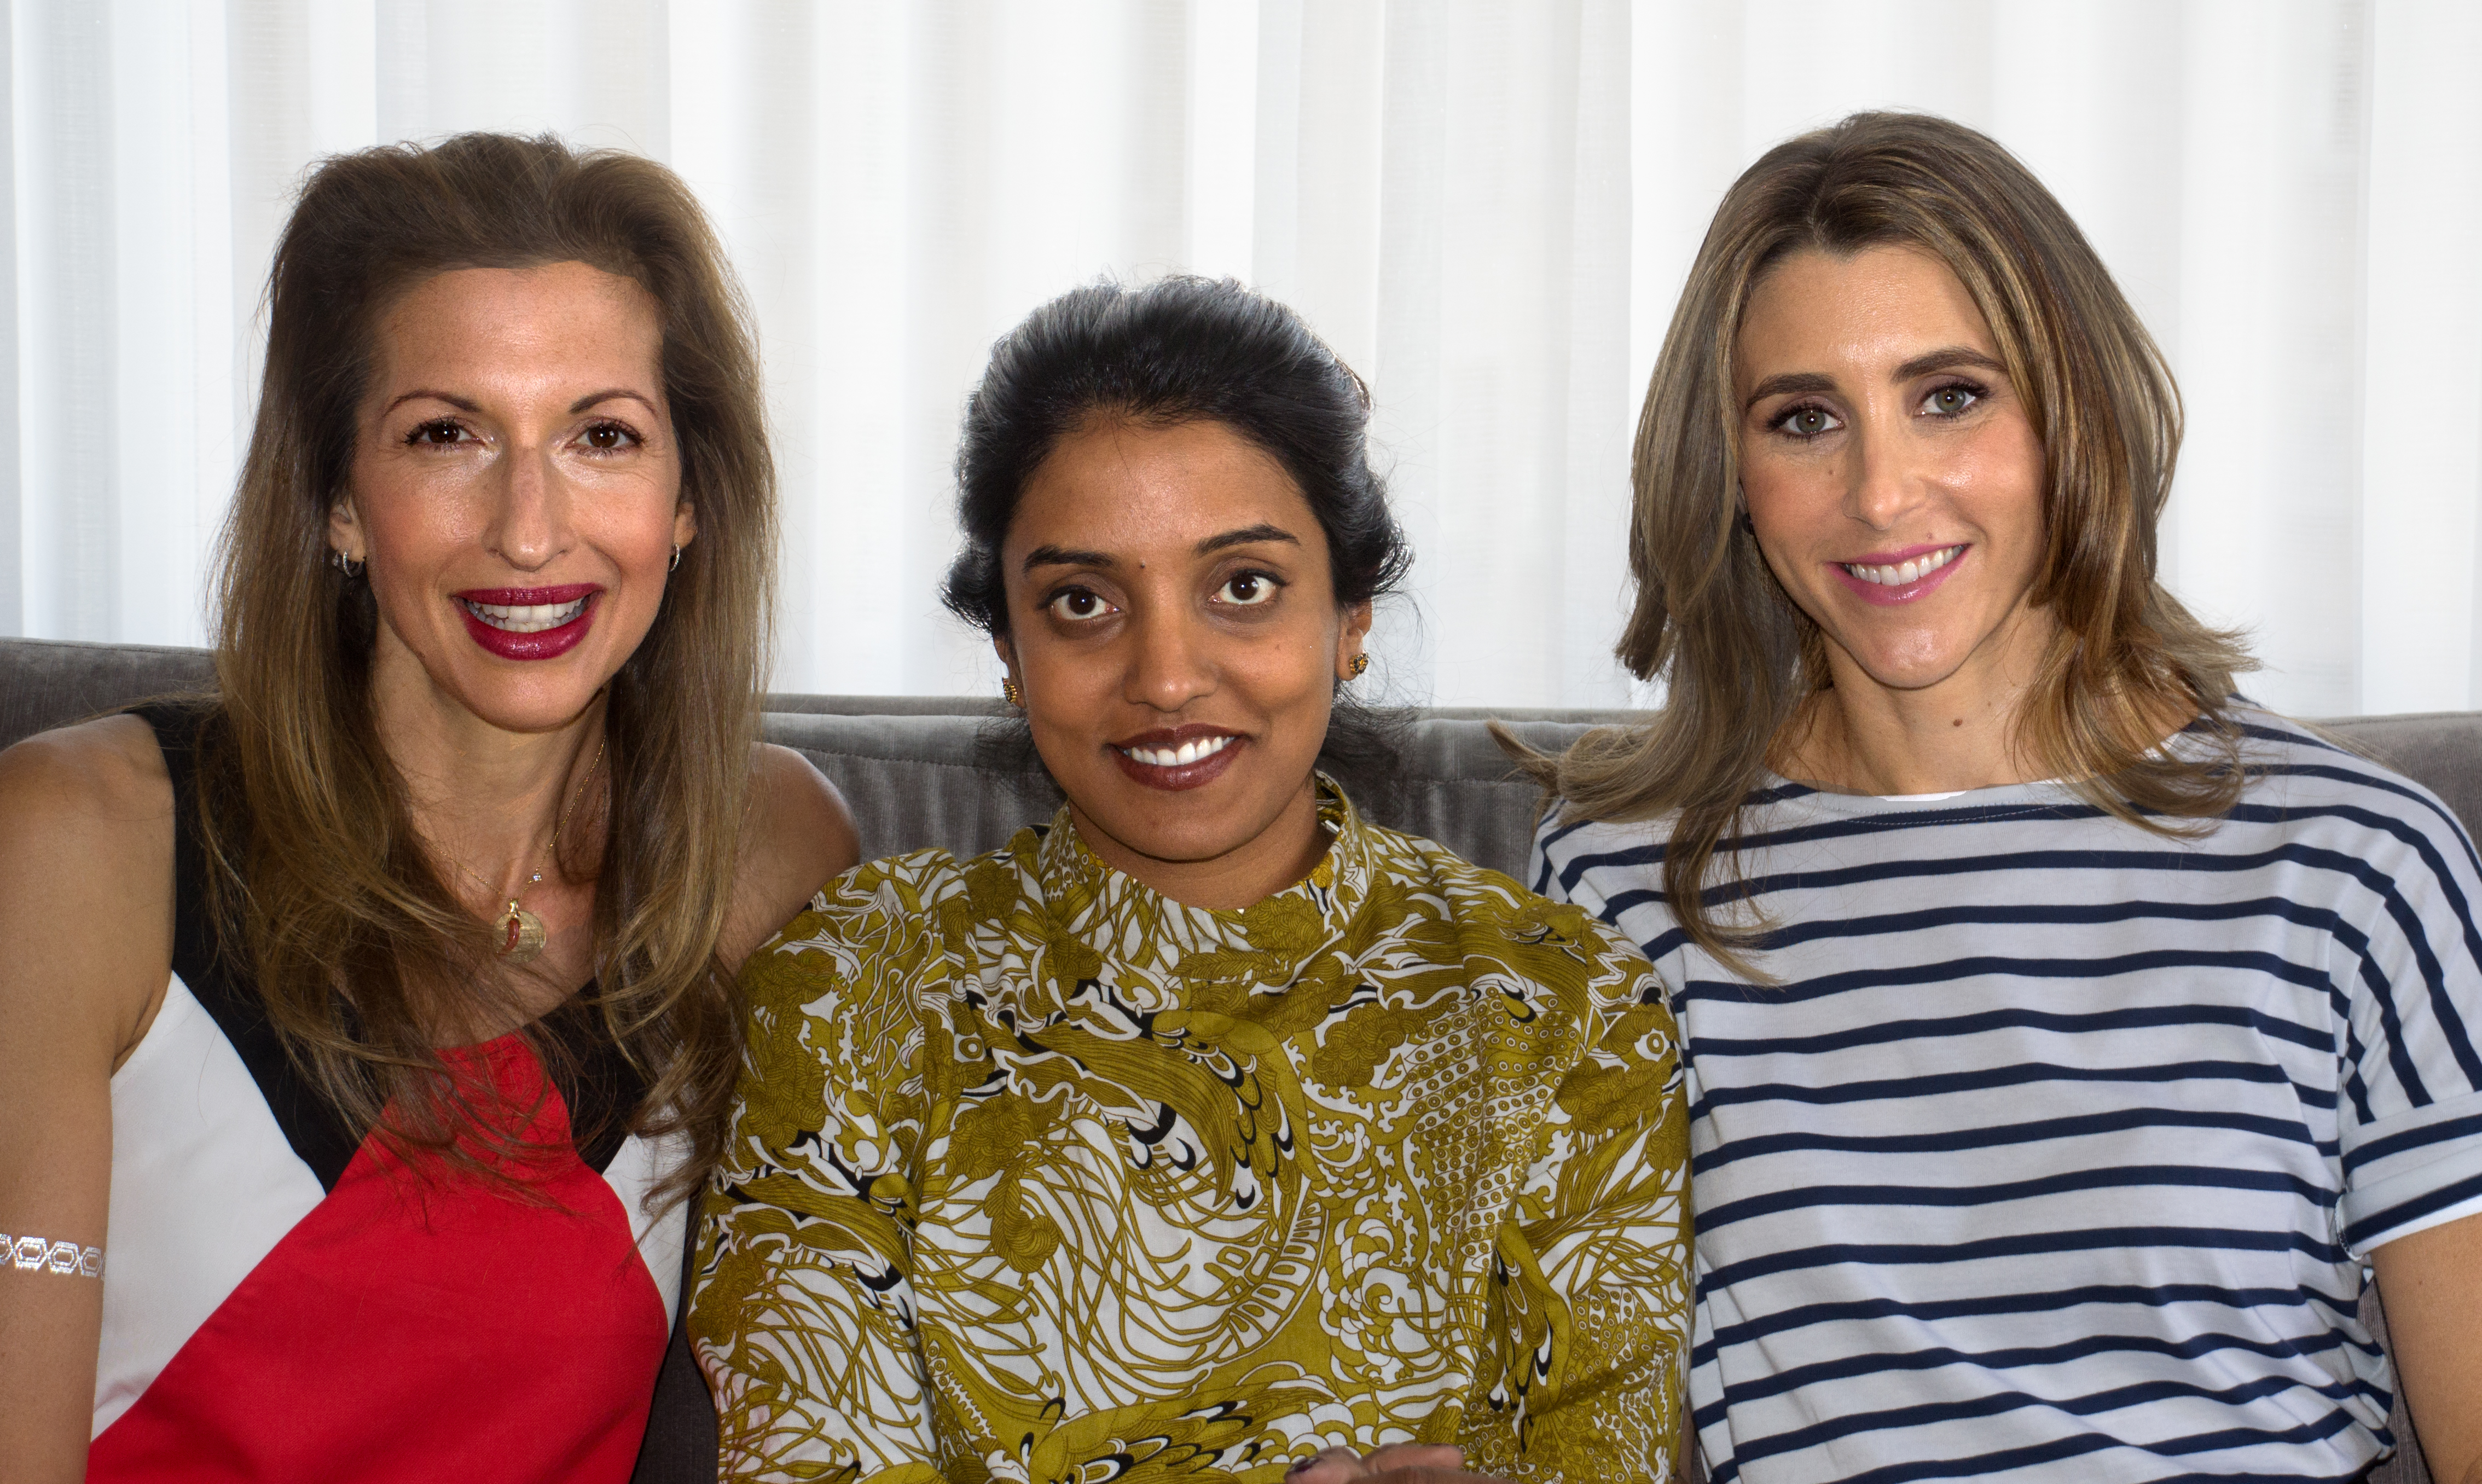 Caption: Alysia Reiner, Meera Menon, Sarah Megan Thomas, San Francisco, CA 7/15/16, Credit: Andrea Chase